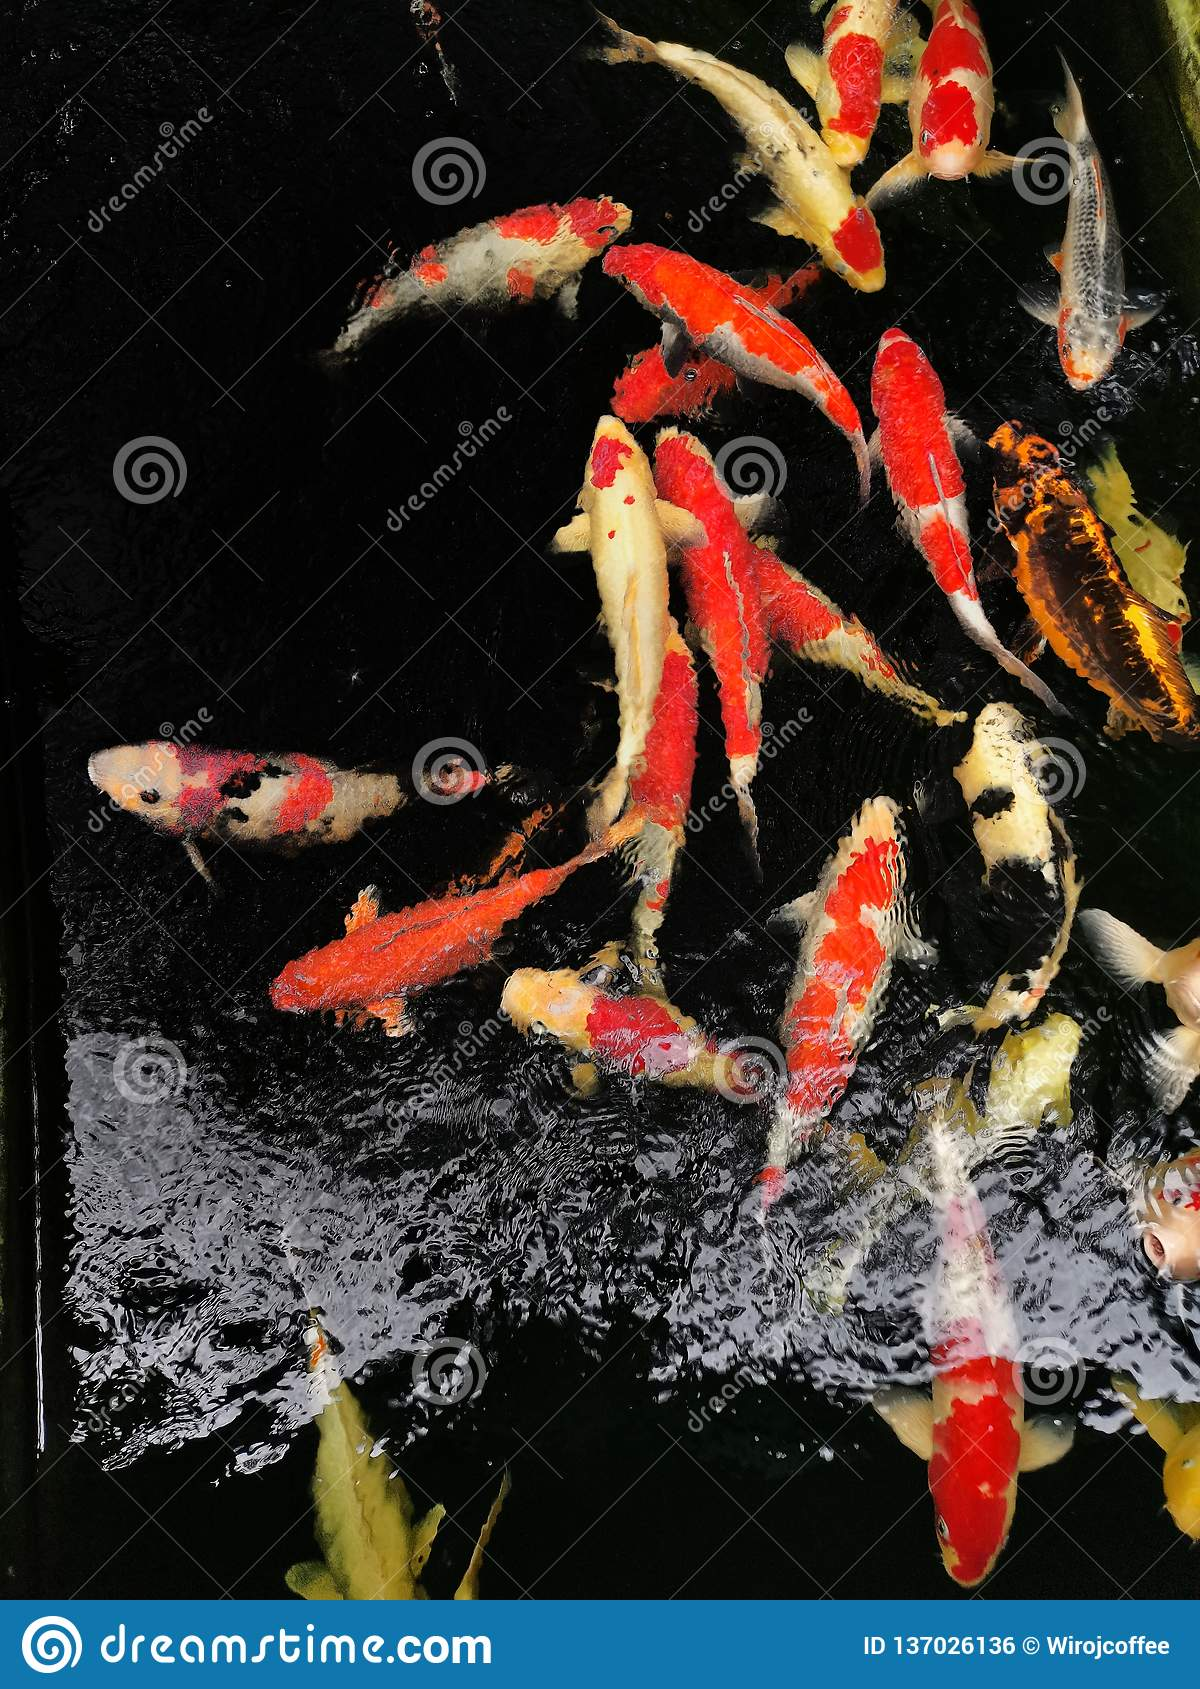 Cranberry Fish Are Eating Feed Pellet In The Pond At